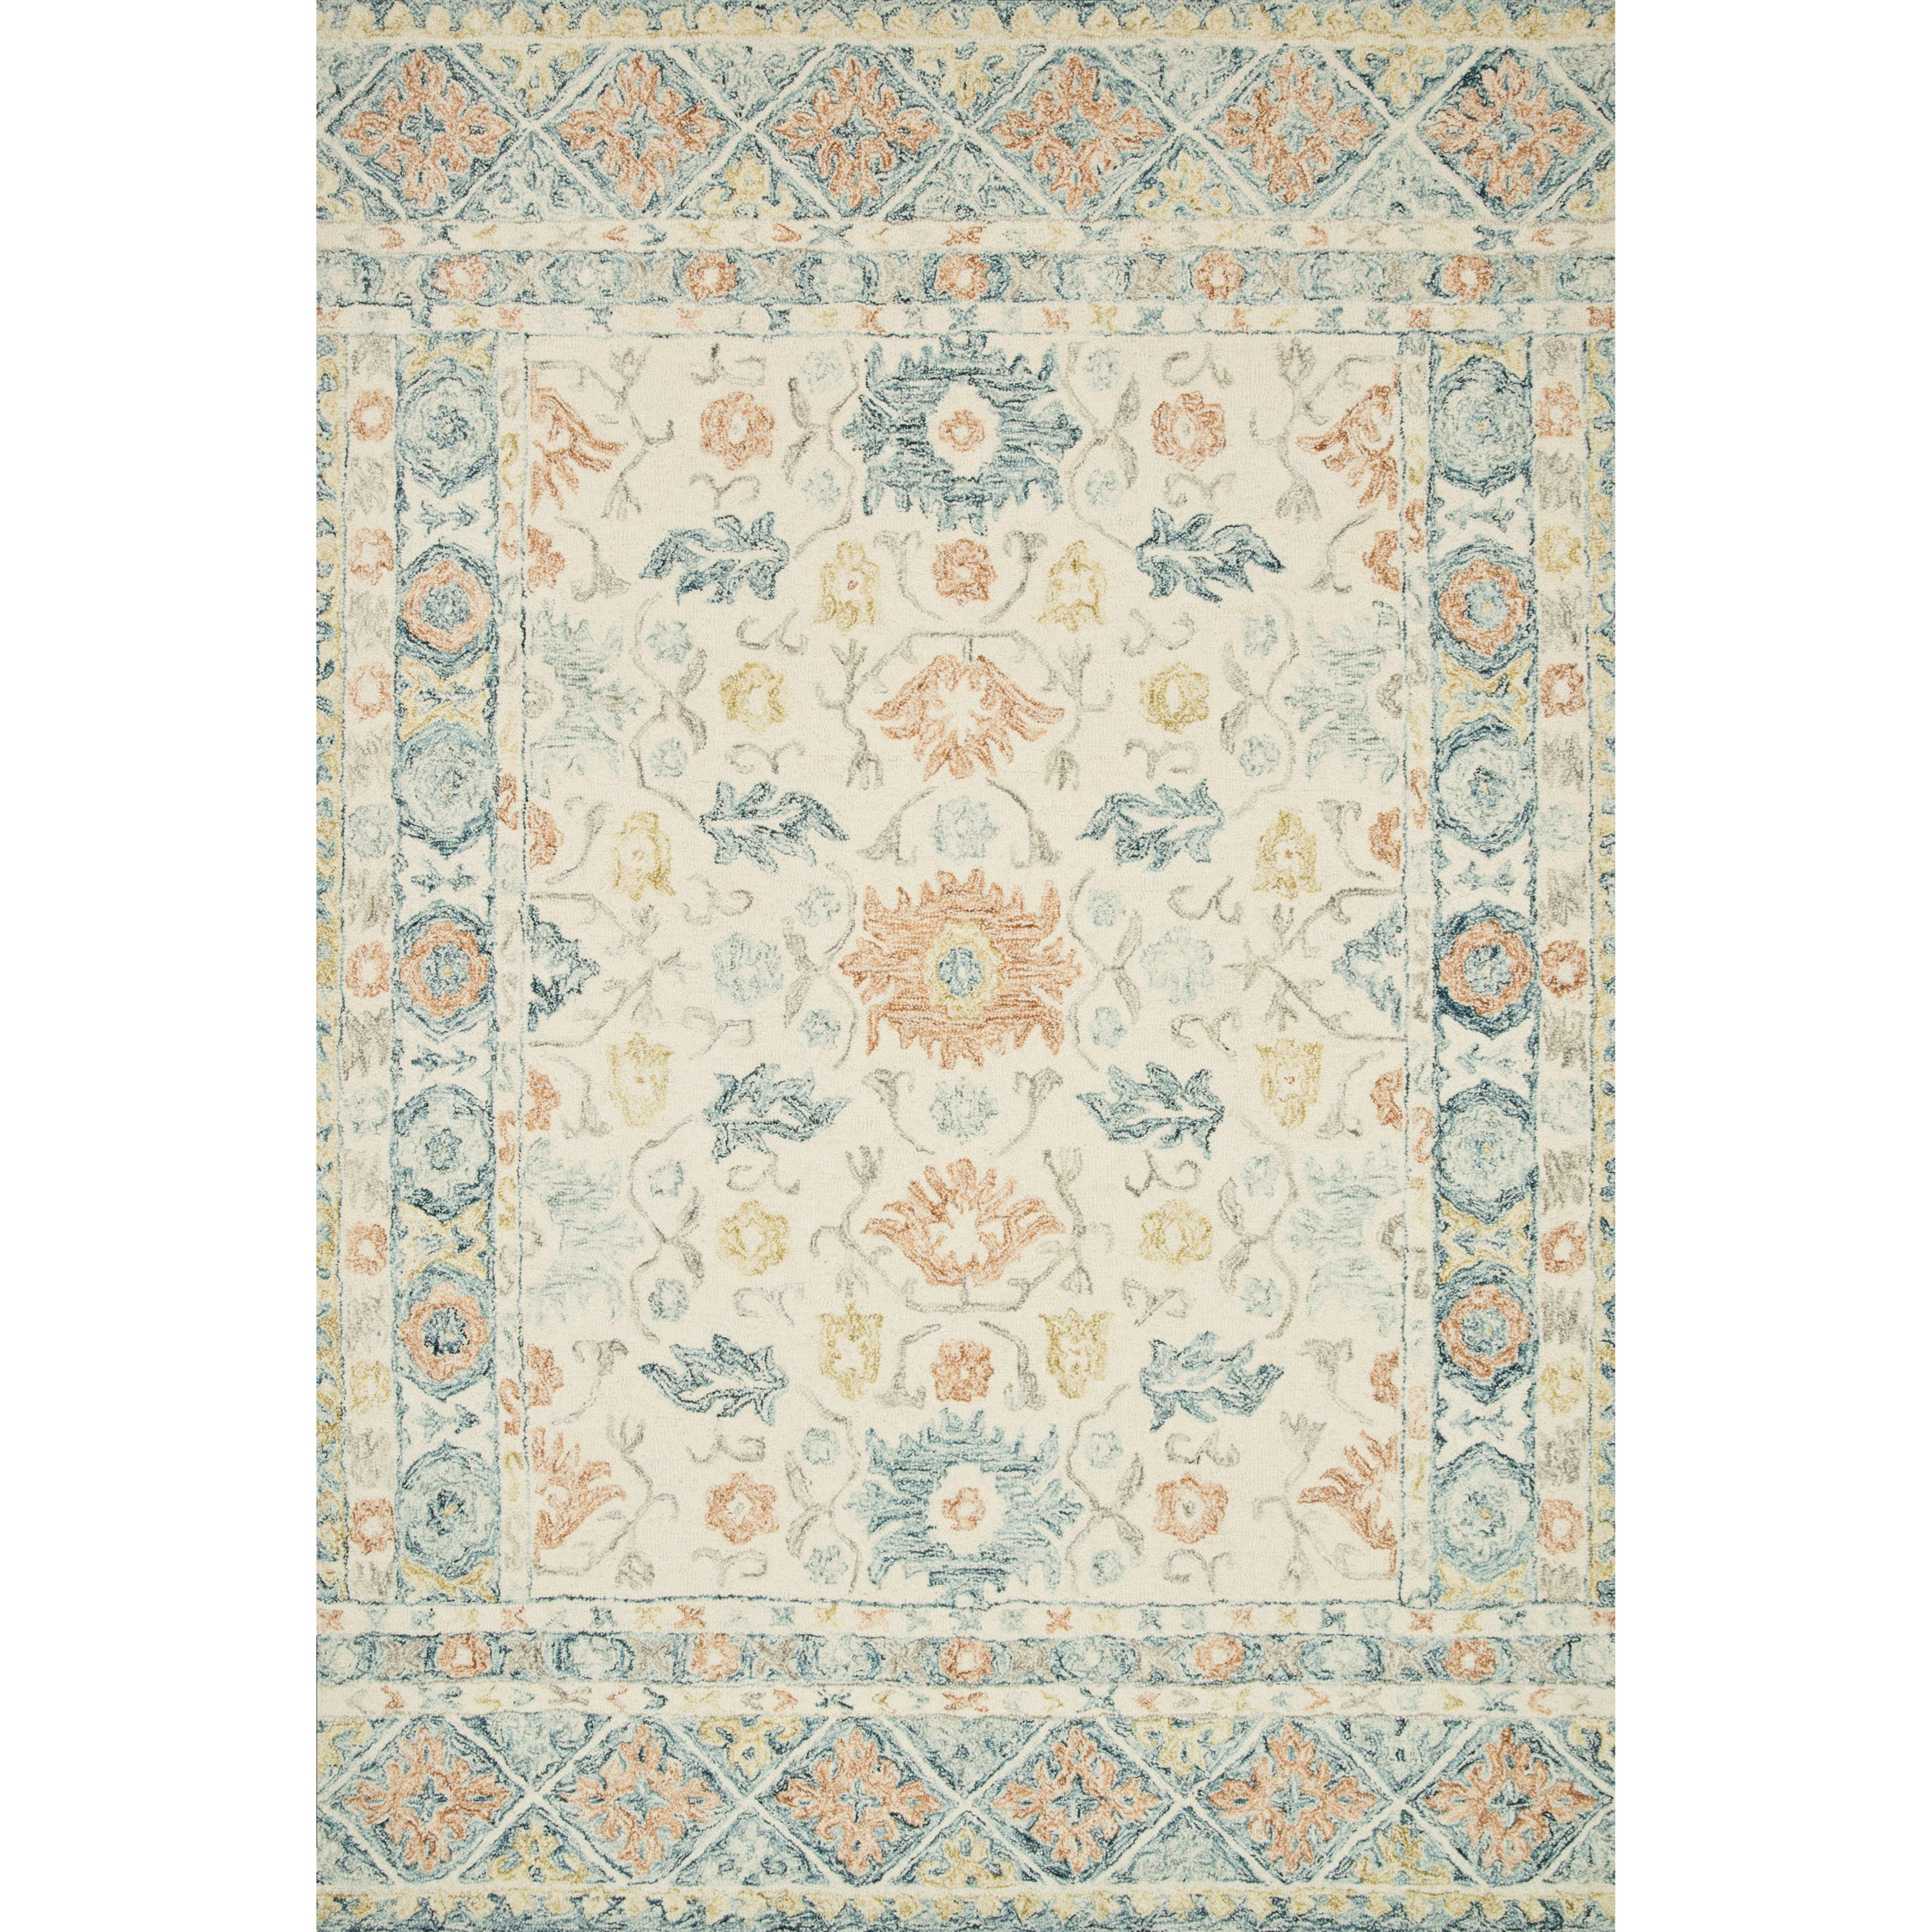 """Norabel 2'3"""" x 3'9"""" Ivory / Multi Rug by Loloi Rugs at Virginia Furniture Market"""